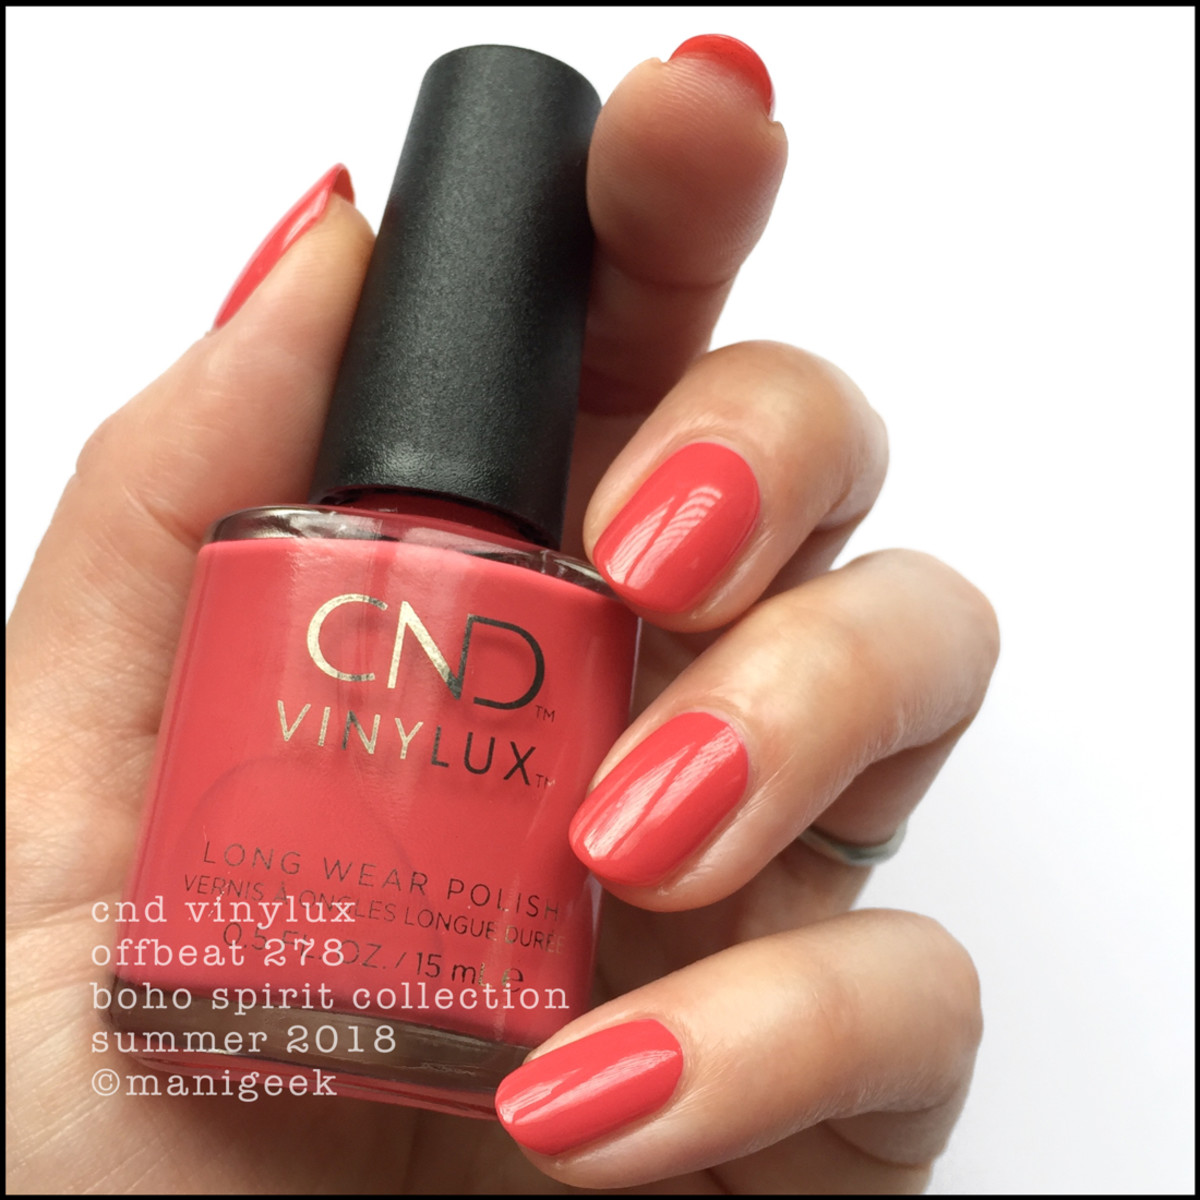 CND Vinylux Offbeat 278 _ CND Boho Spirit Collection Summer 2018